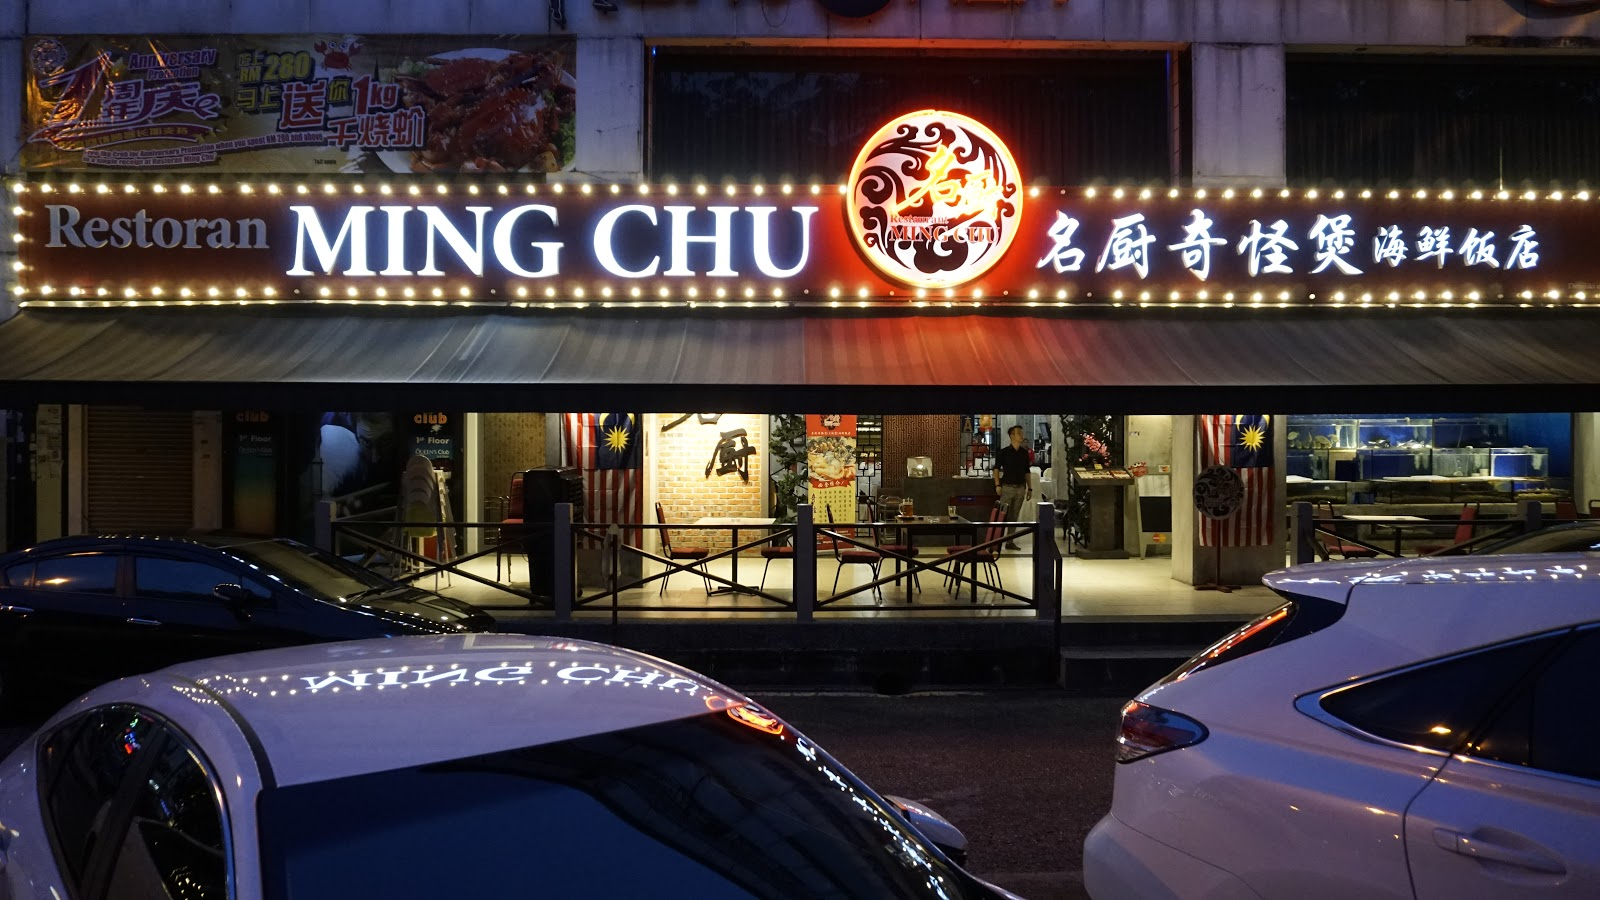 Being Listed In The Top 100 Must Try Restaurants Malaysia We Were Surprised To Learn That Ming Chu Seafood Restaurant Has Only Been Around For Less Than